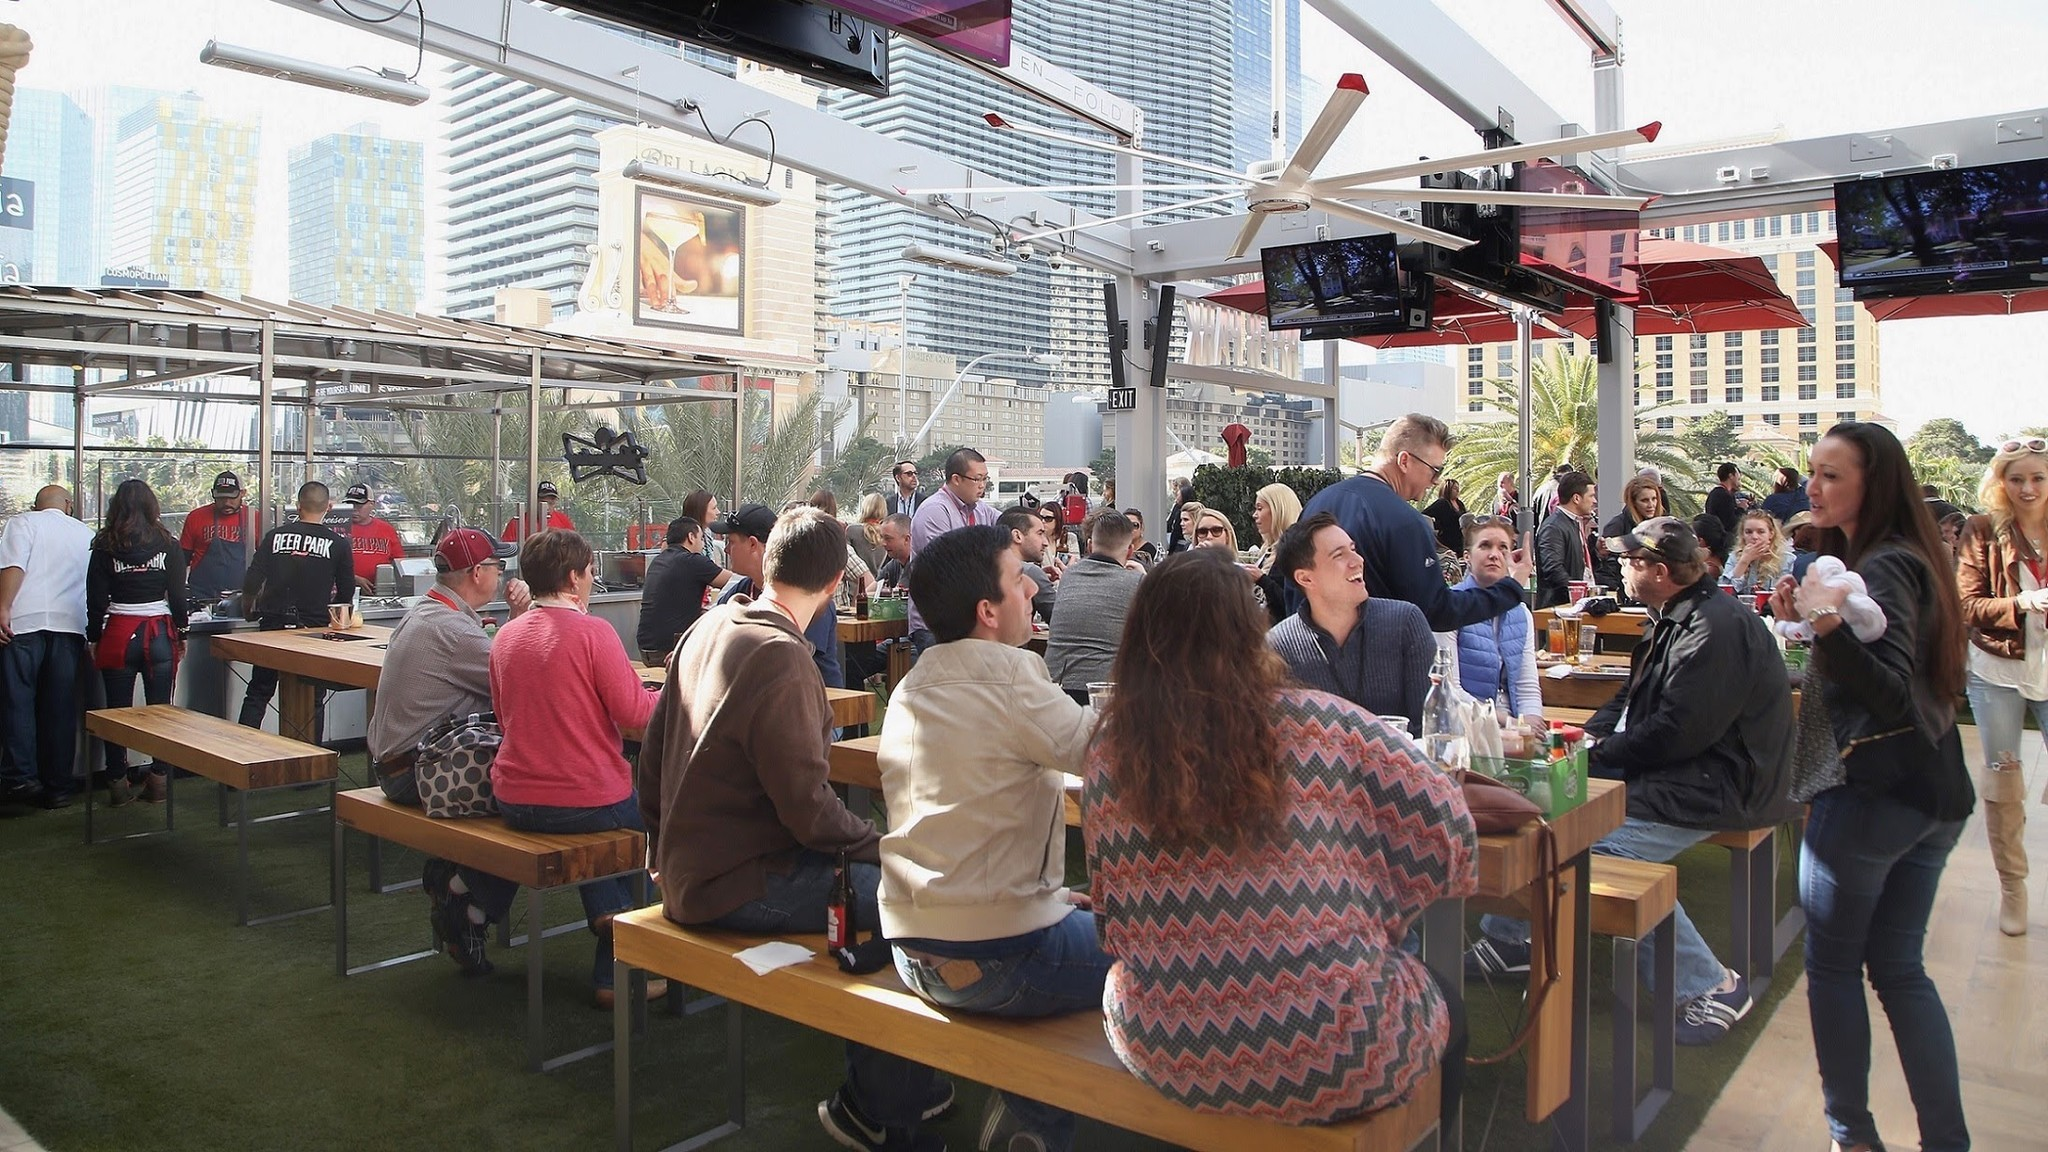 Beer Park has an open-air location overlooking the Strip.